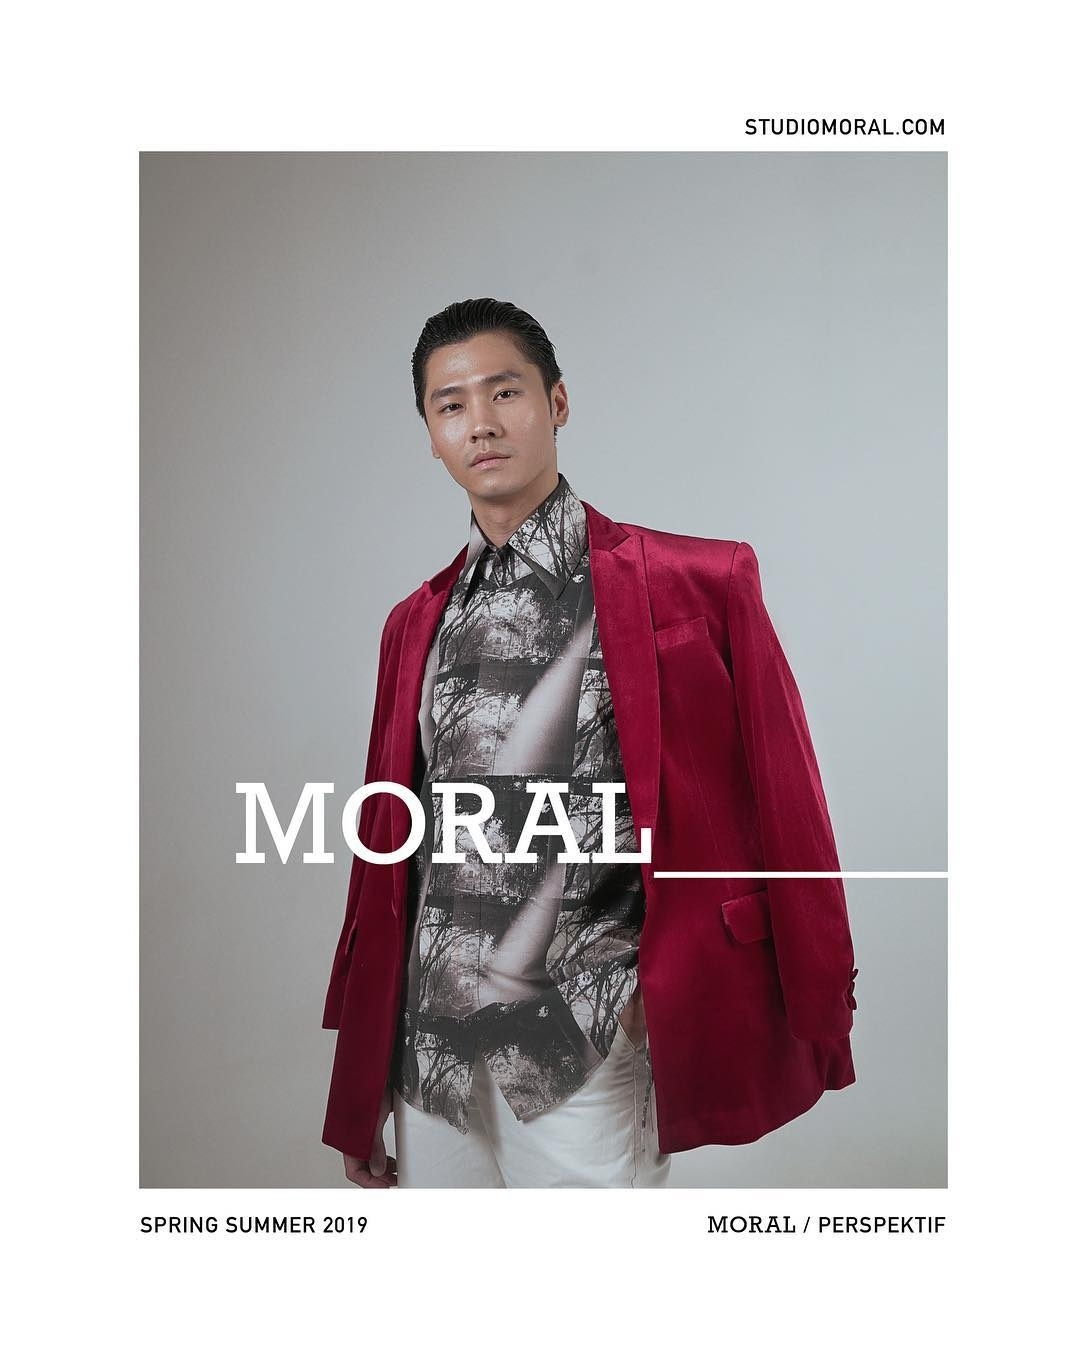 HAN for Studio Moral